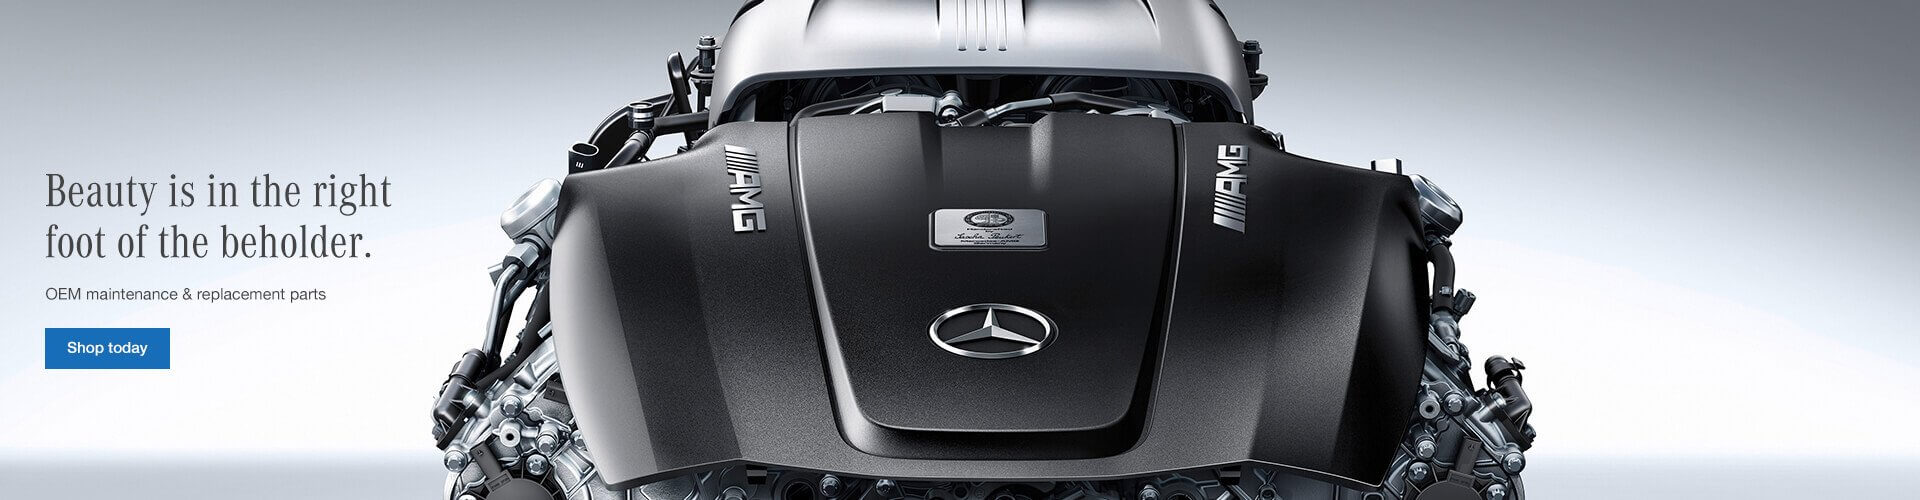 OEM Mercedes-Benz Maintenance and Replacement Parts